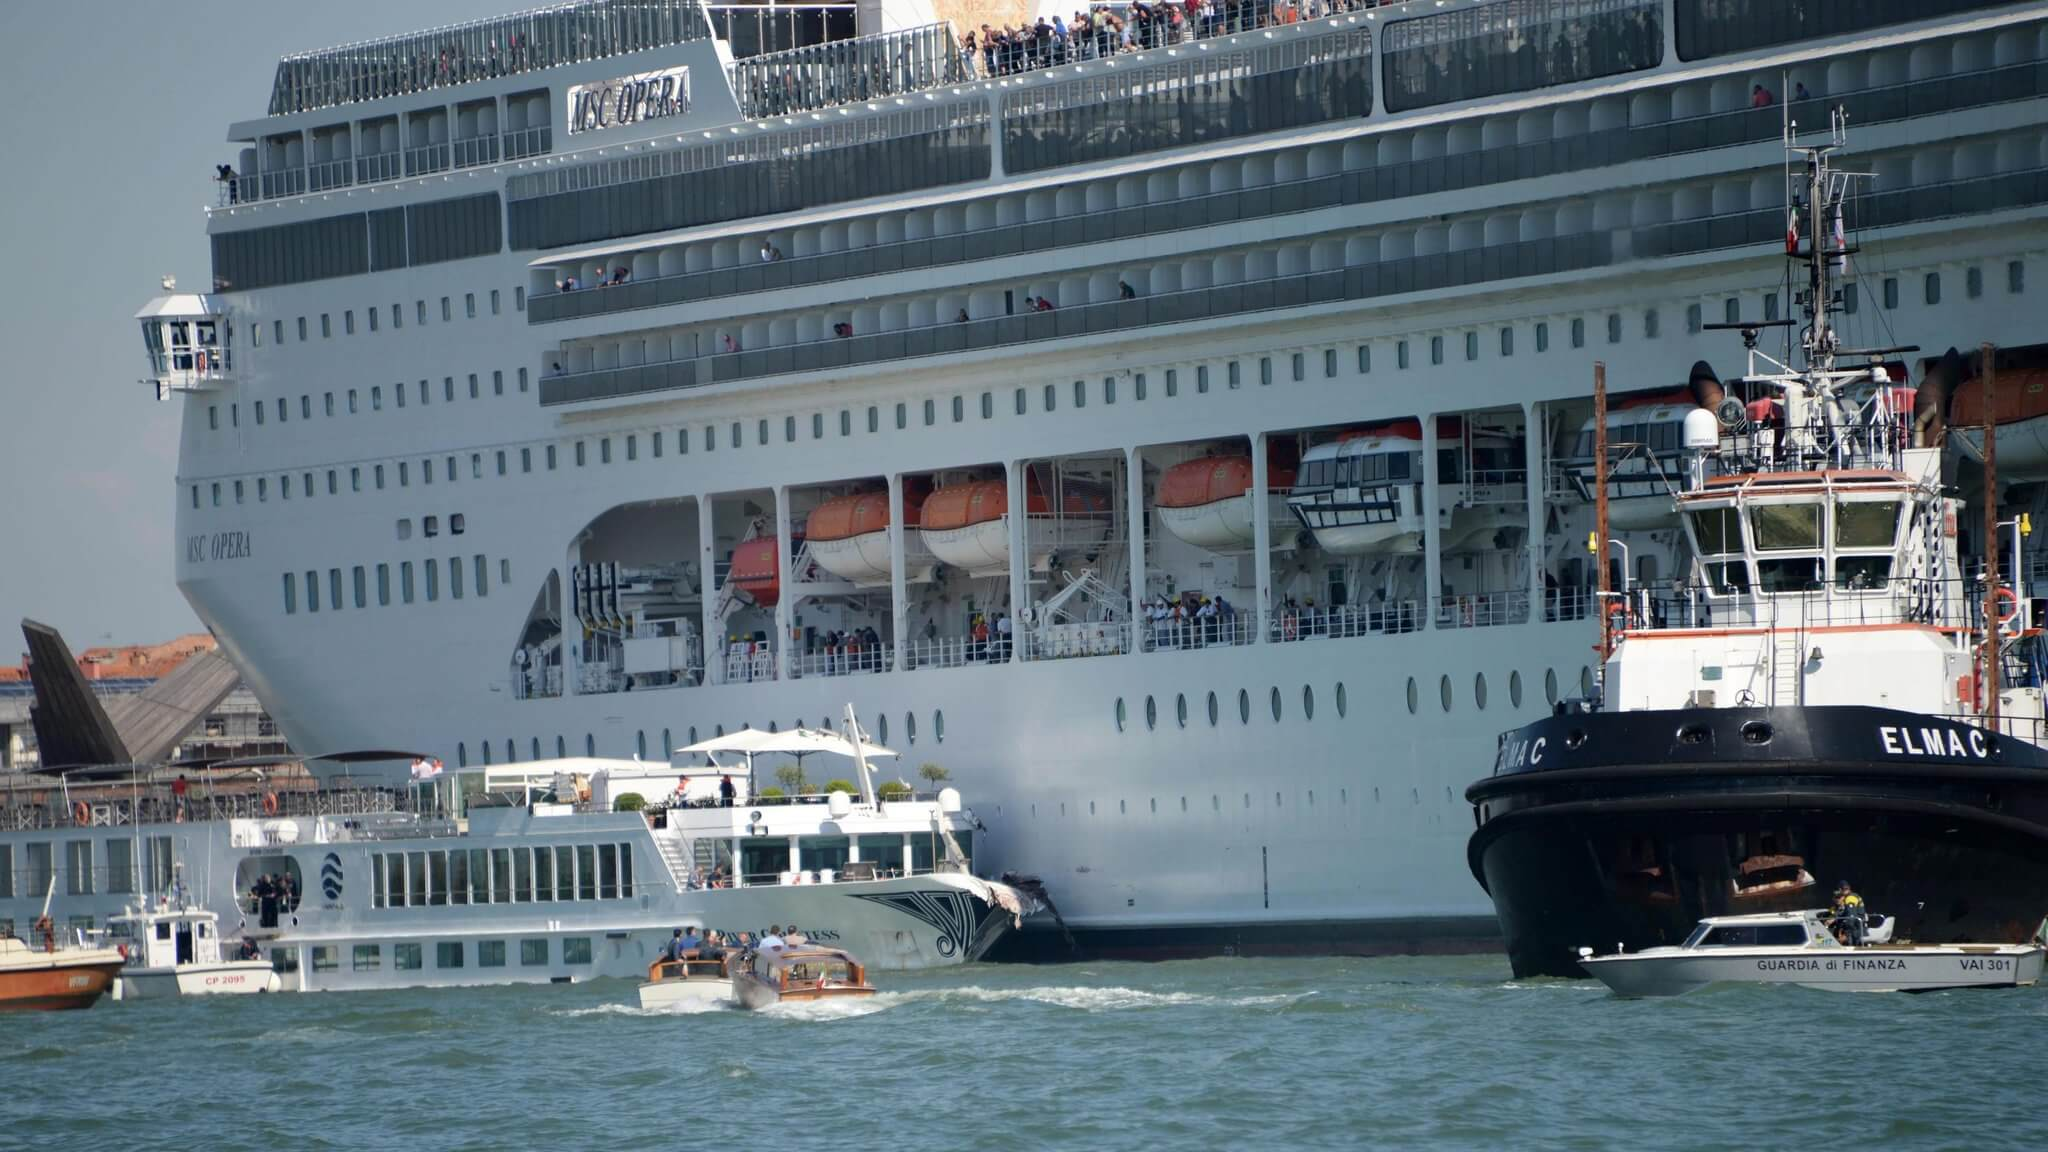 , MS Opera Cruise cruise ship slams into wharf in Venice while tourists flee, Buzz travel | eTurboNews |Travel News